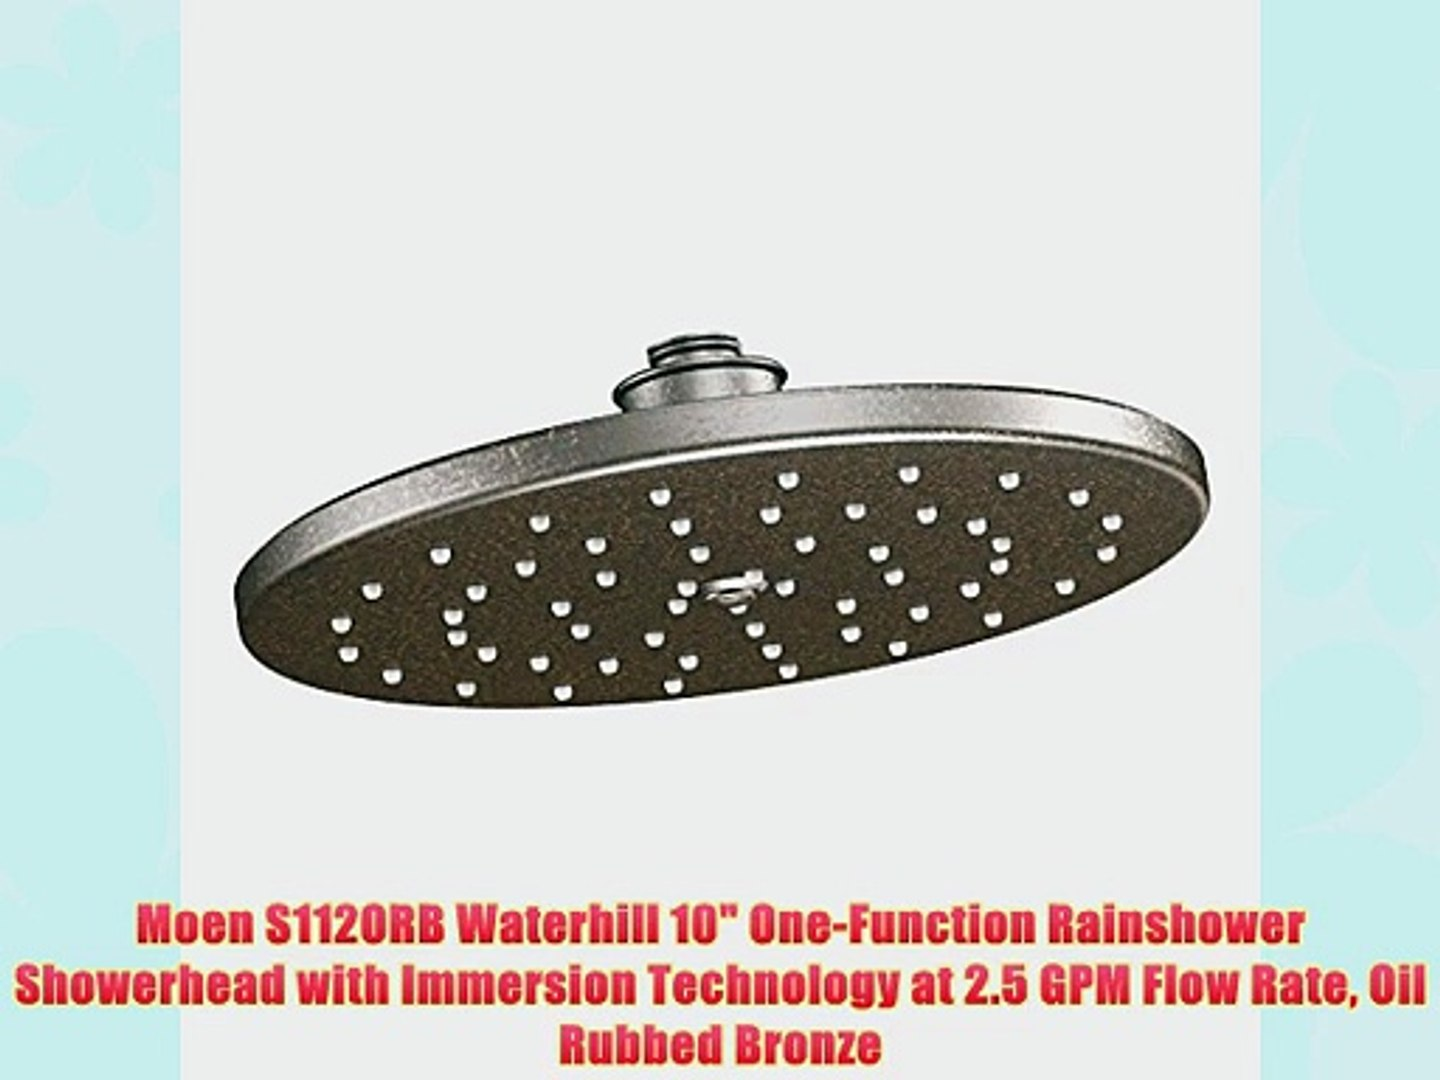 Moen S112orb Waterhill 10 One Function Rainshower Showerhead